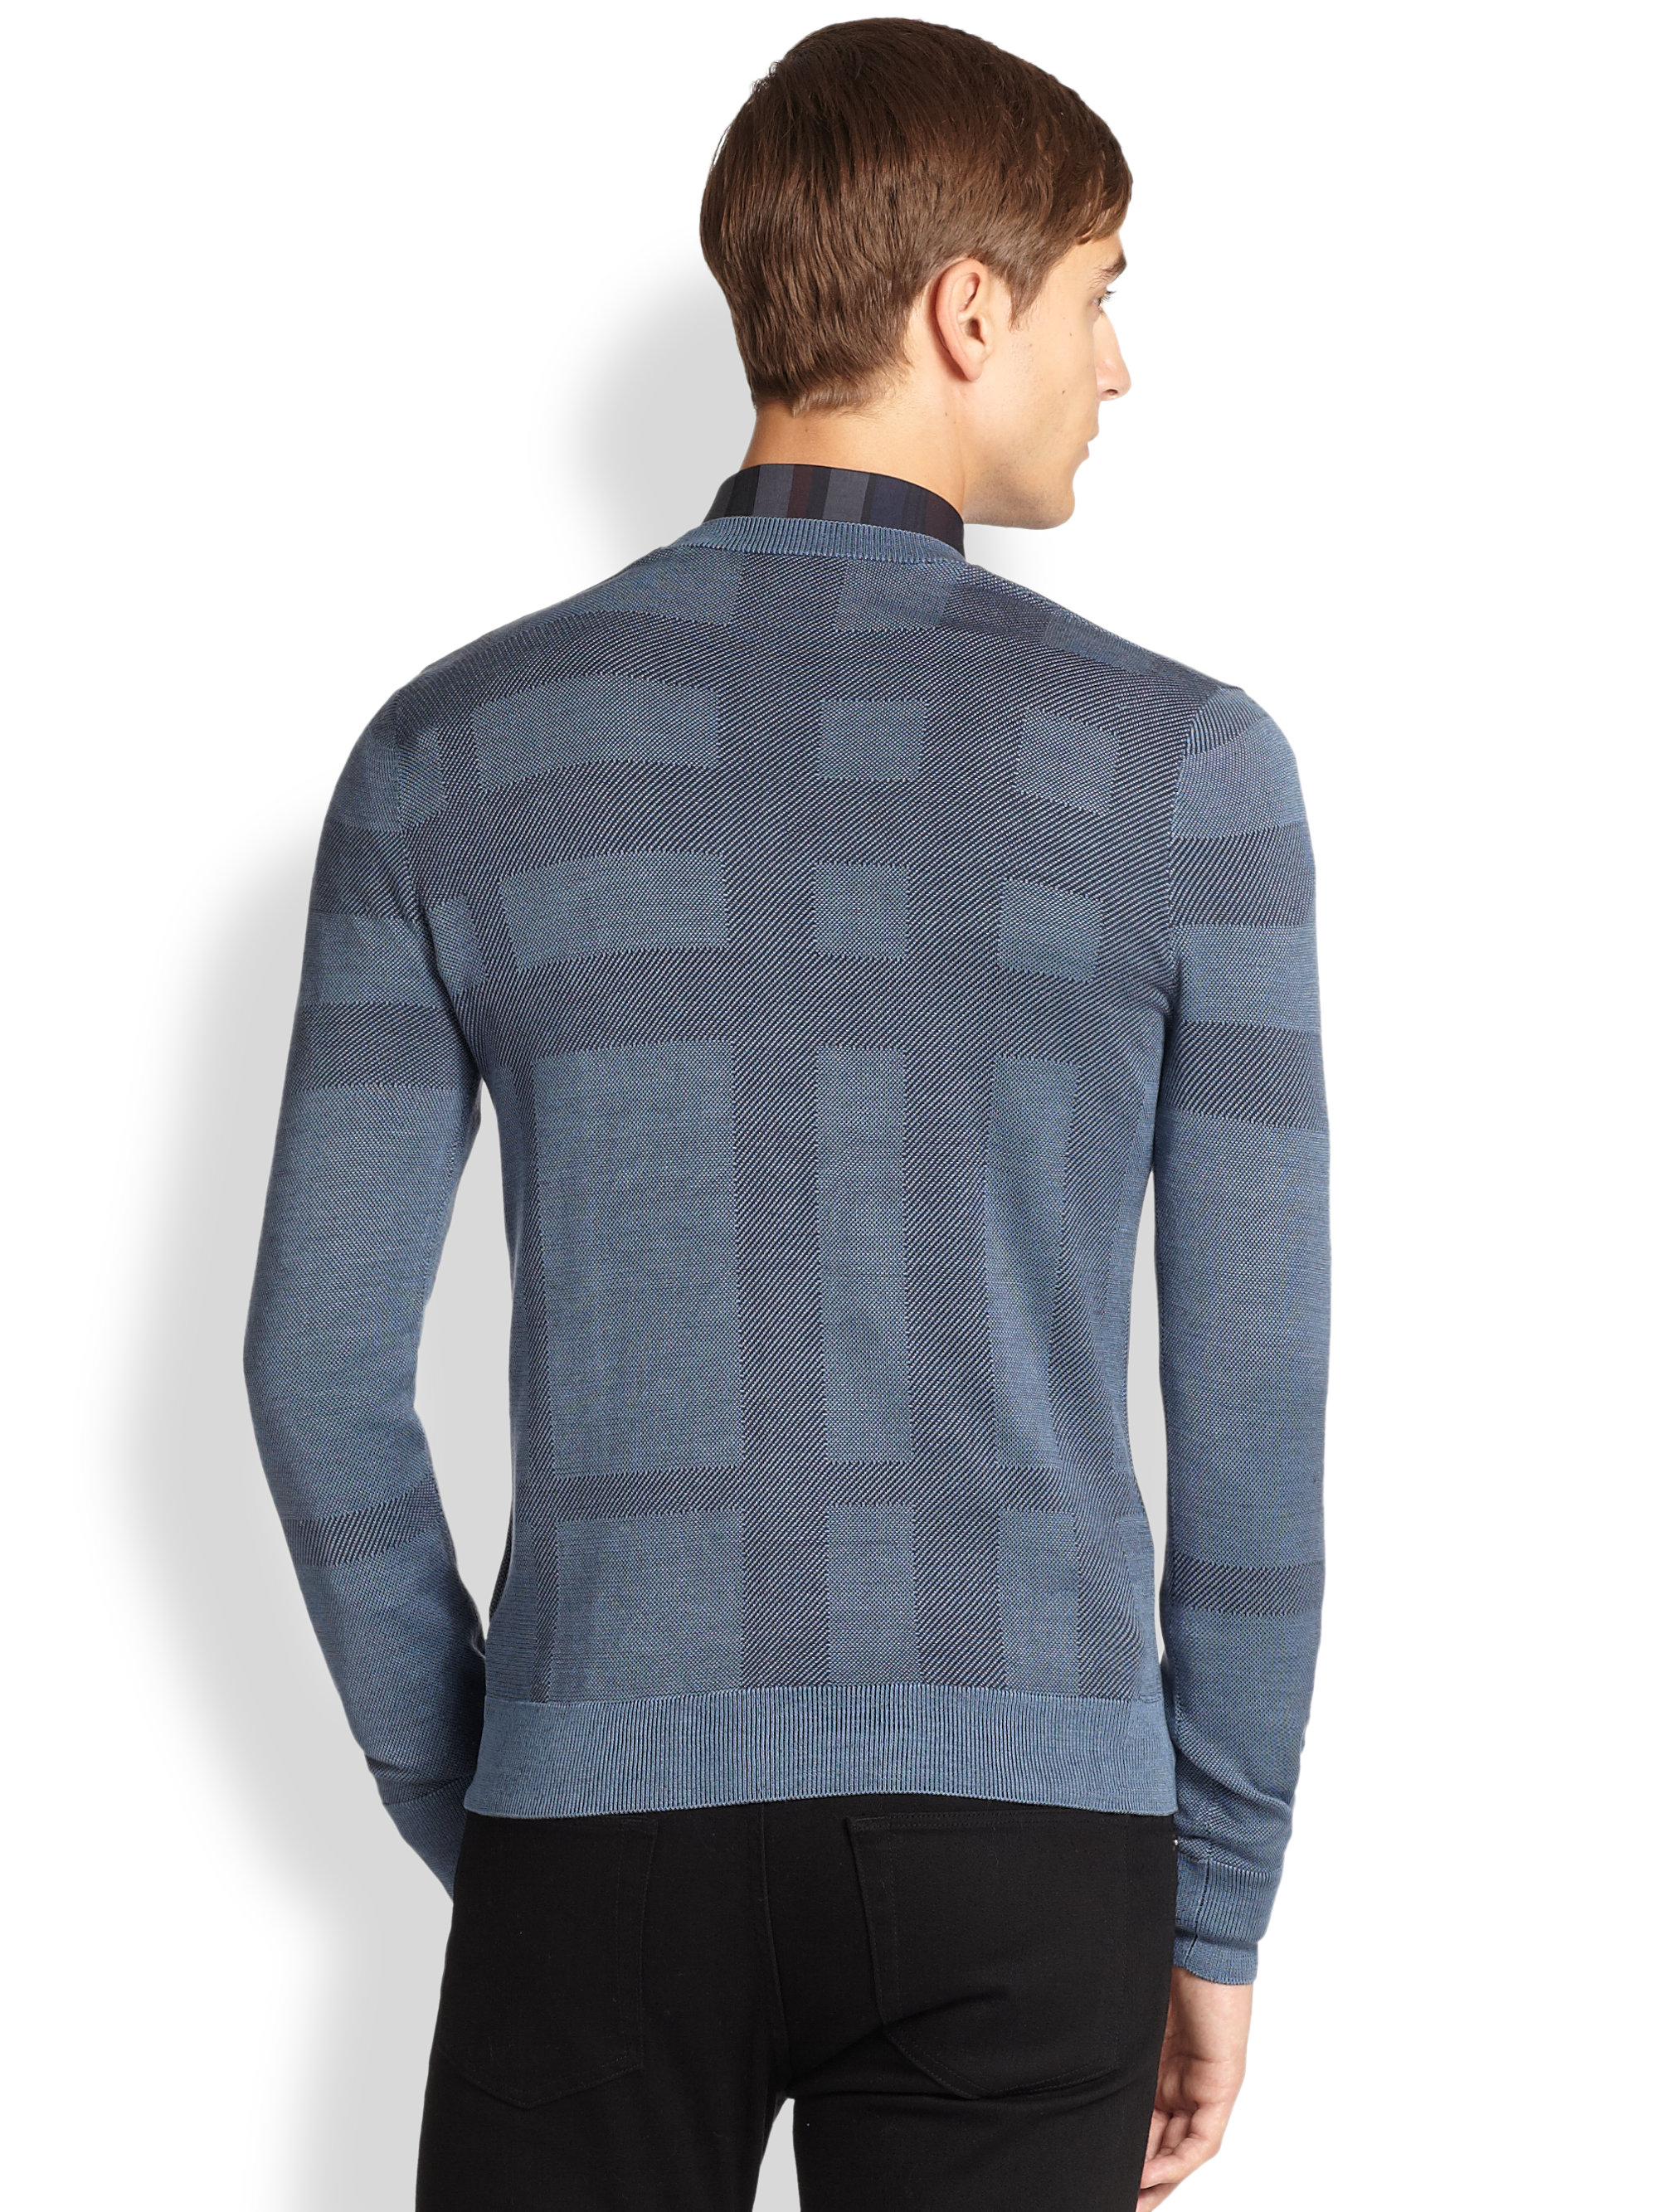 Burberry Väska 2014 : Lyst burberry elmhurst check sweater in blue for men